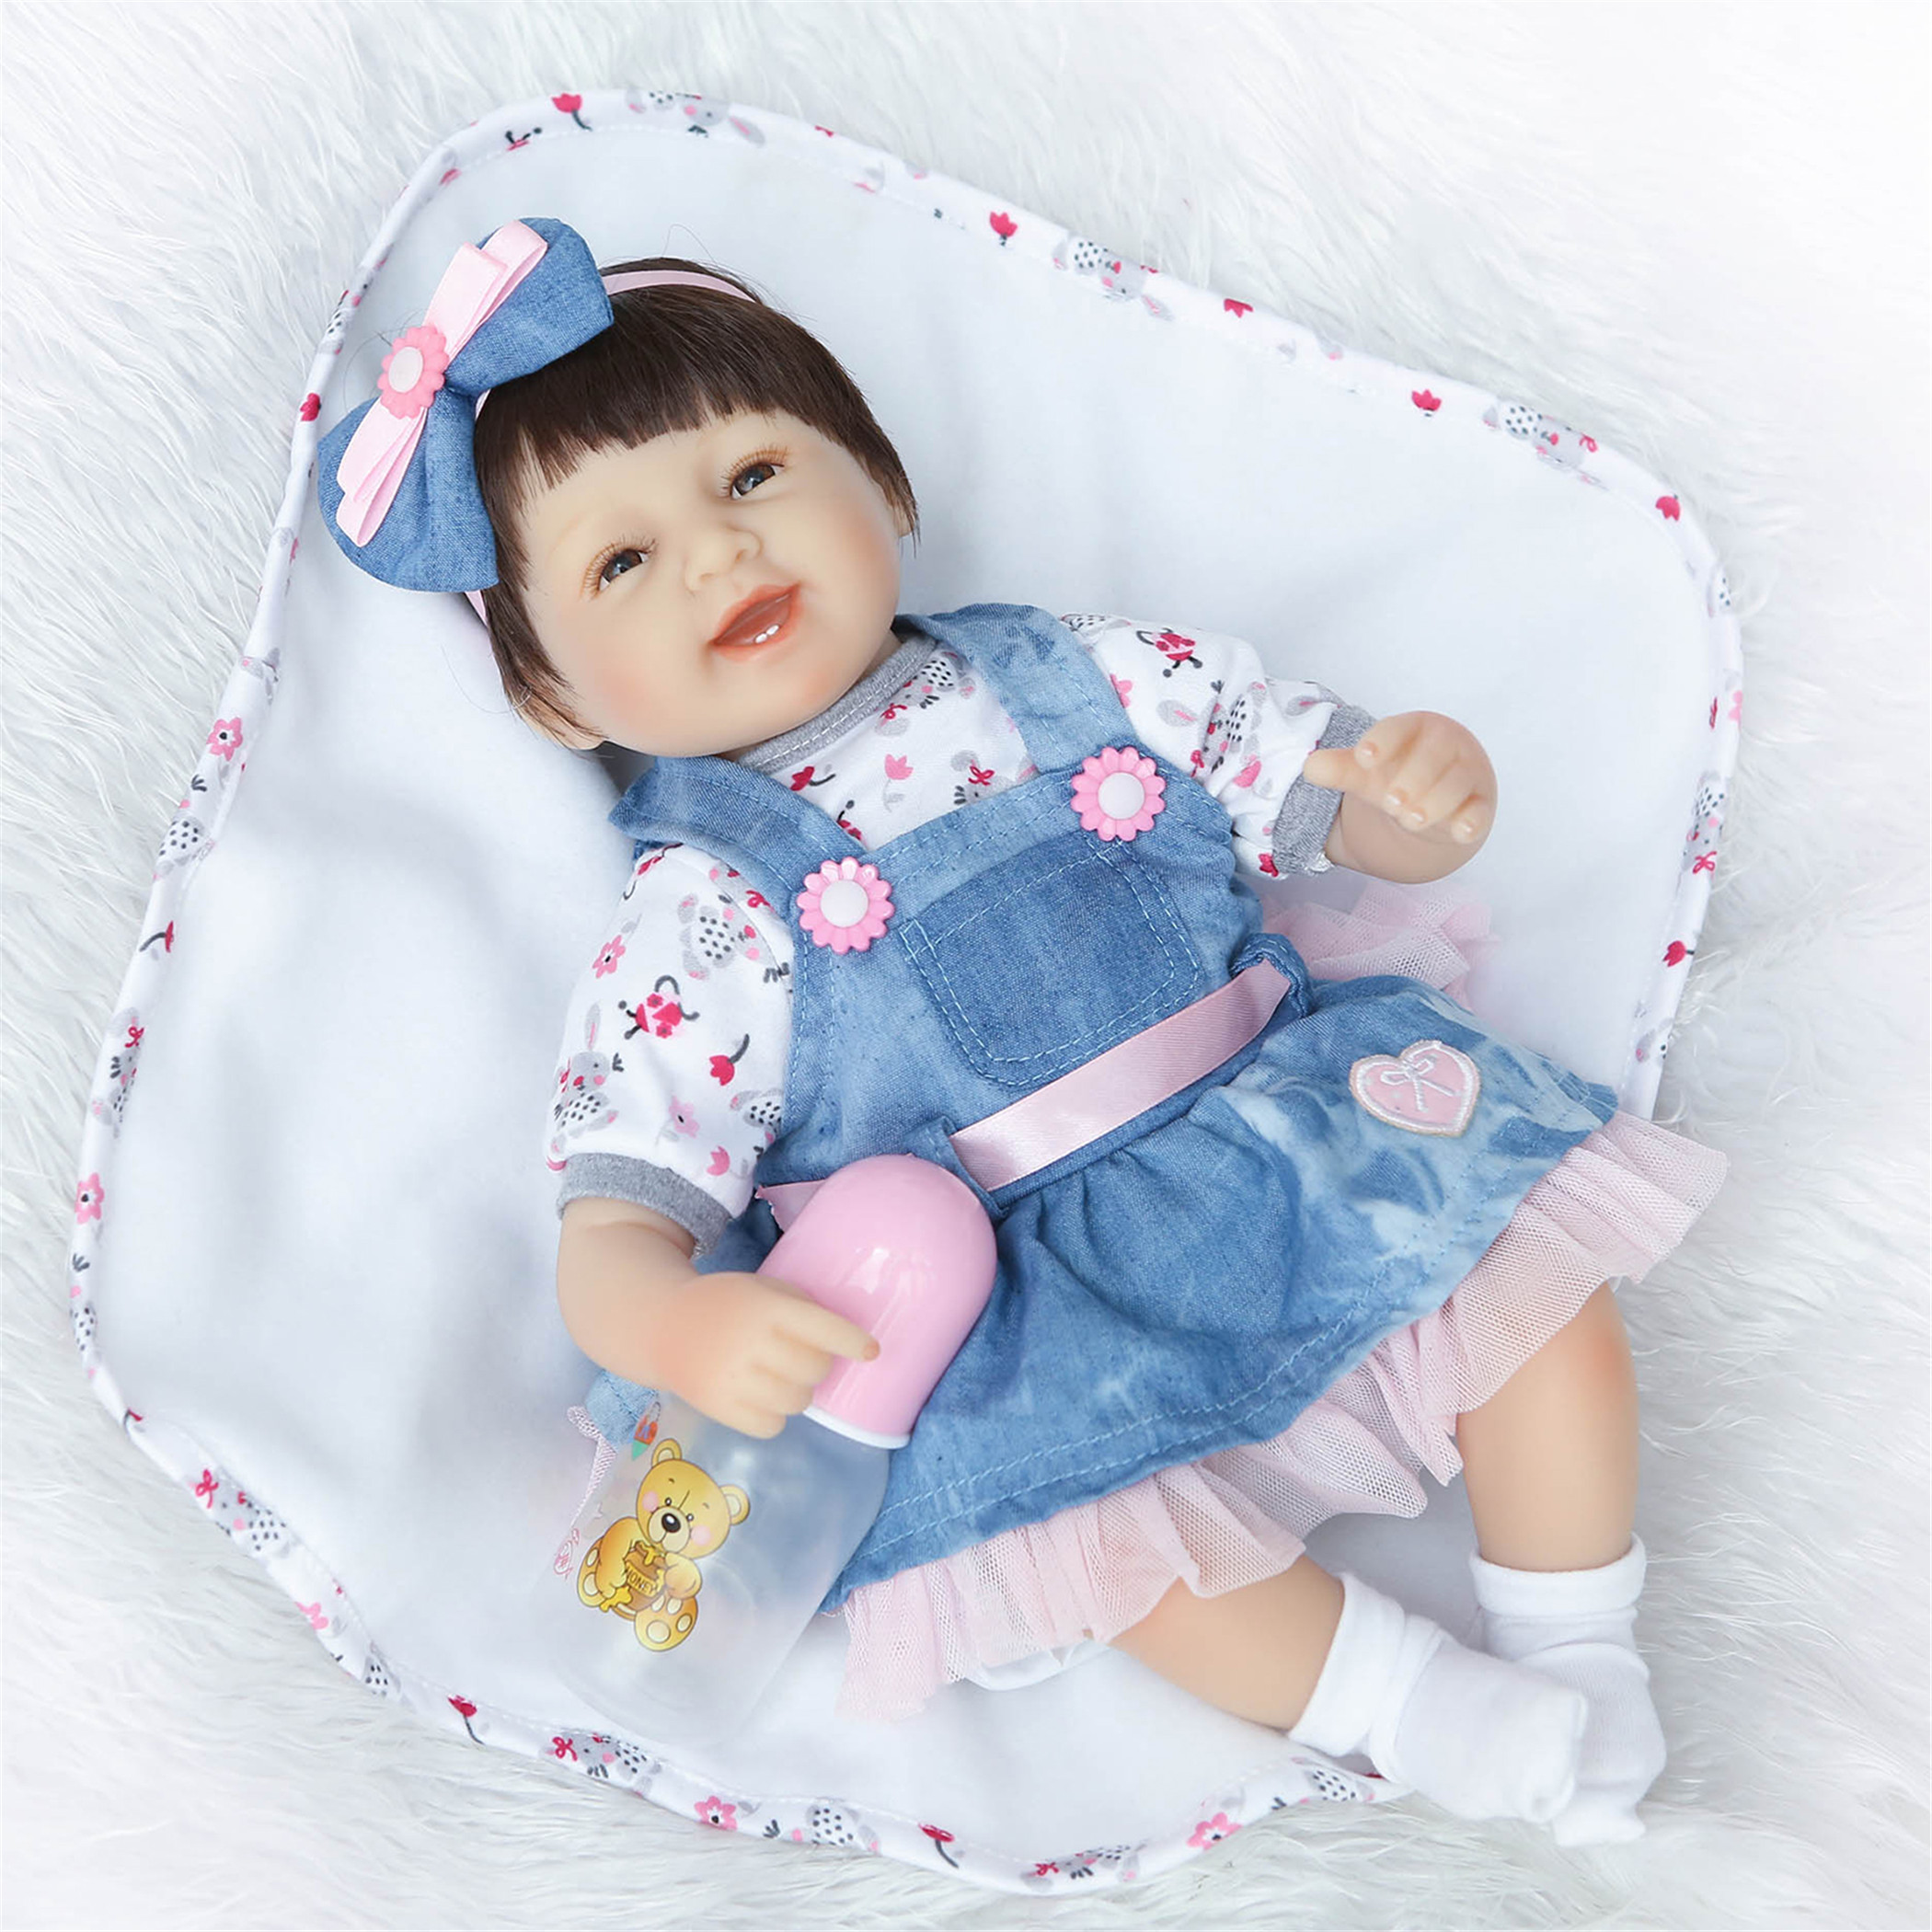 NPK Collection Reborn Baby Doll Soft Silicone vinyl 18inch 45cm Lovely Lifelike Cute Baby Birthday gift Christmas gift